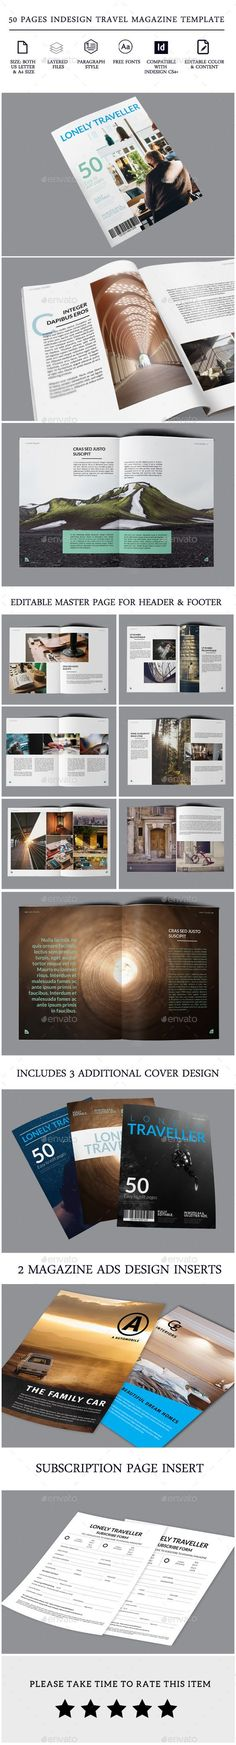 northern beaches christian school multipurpose hall indesign interior Travel Magazine pages Indesign Template by huemenow . Clean and fully  Editabl